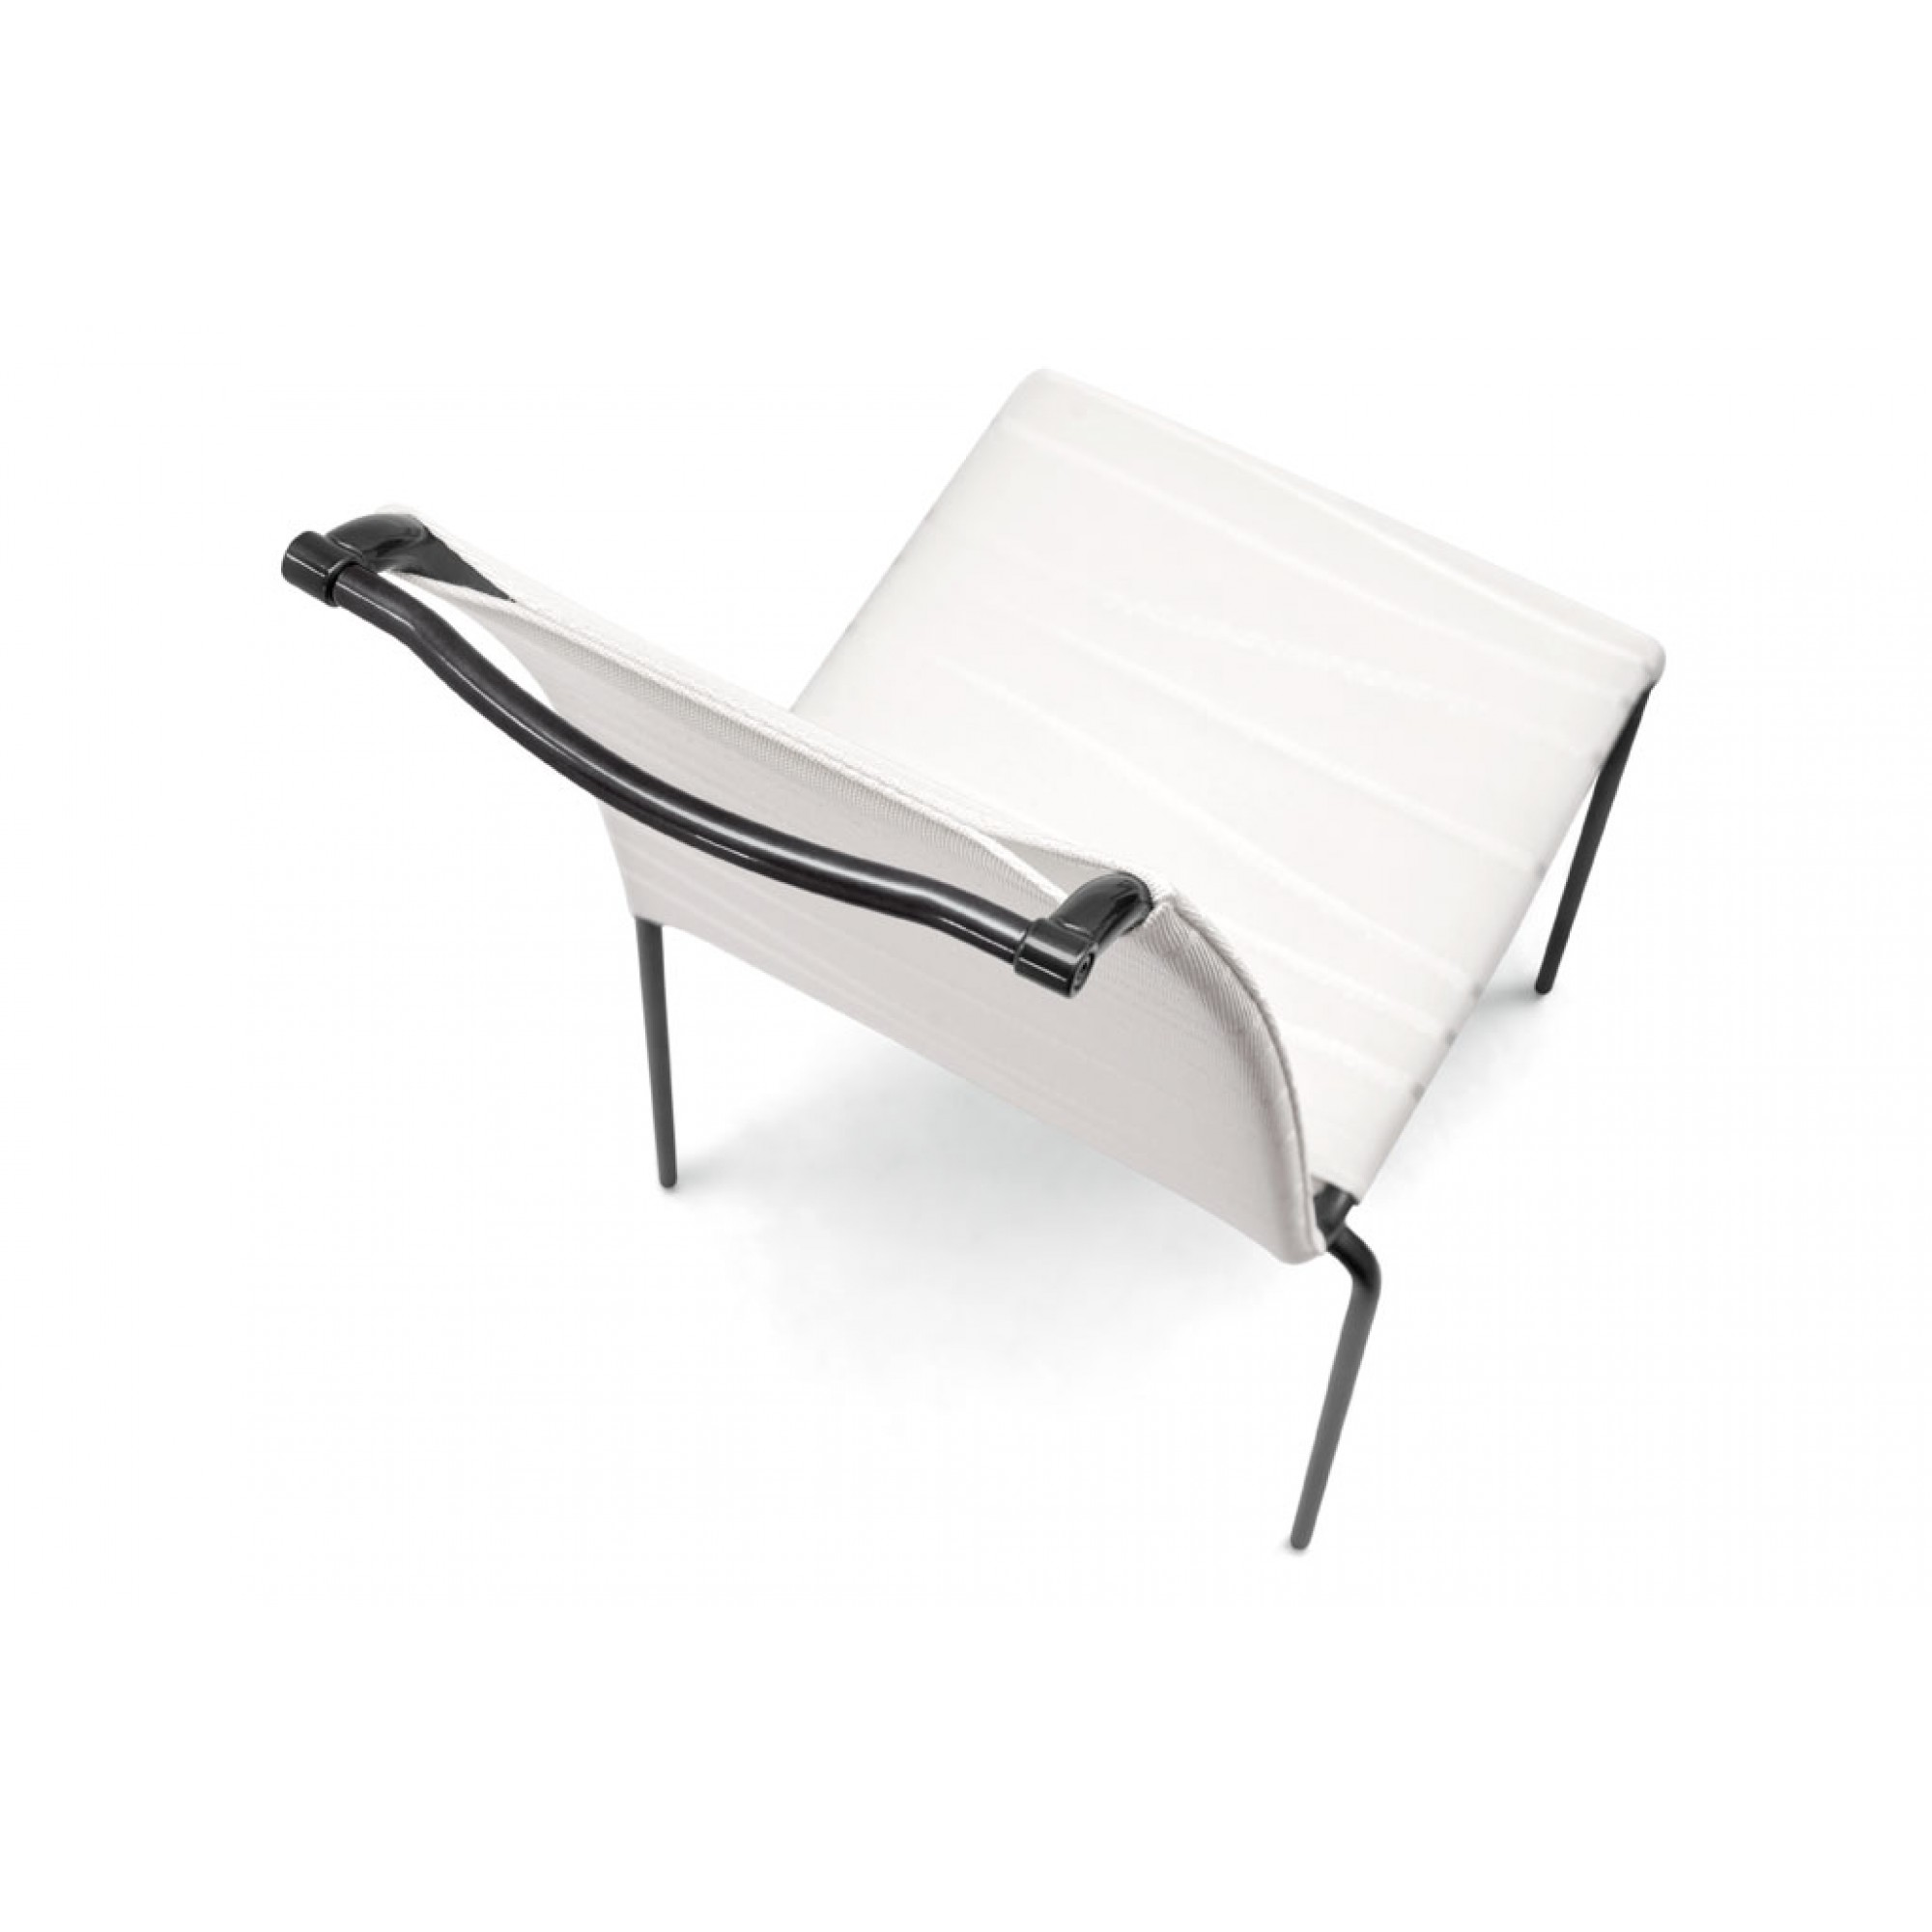 AIR HIGH | Sedie | Sedute | CONNUBIA BY CALLIGARIS - Masonionline